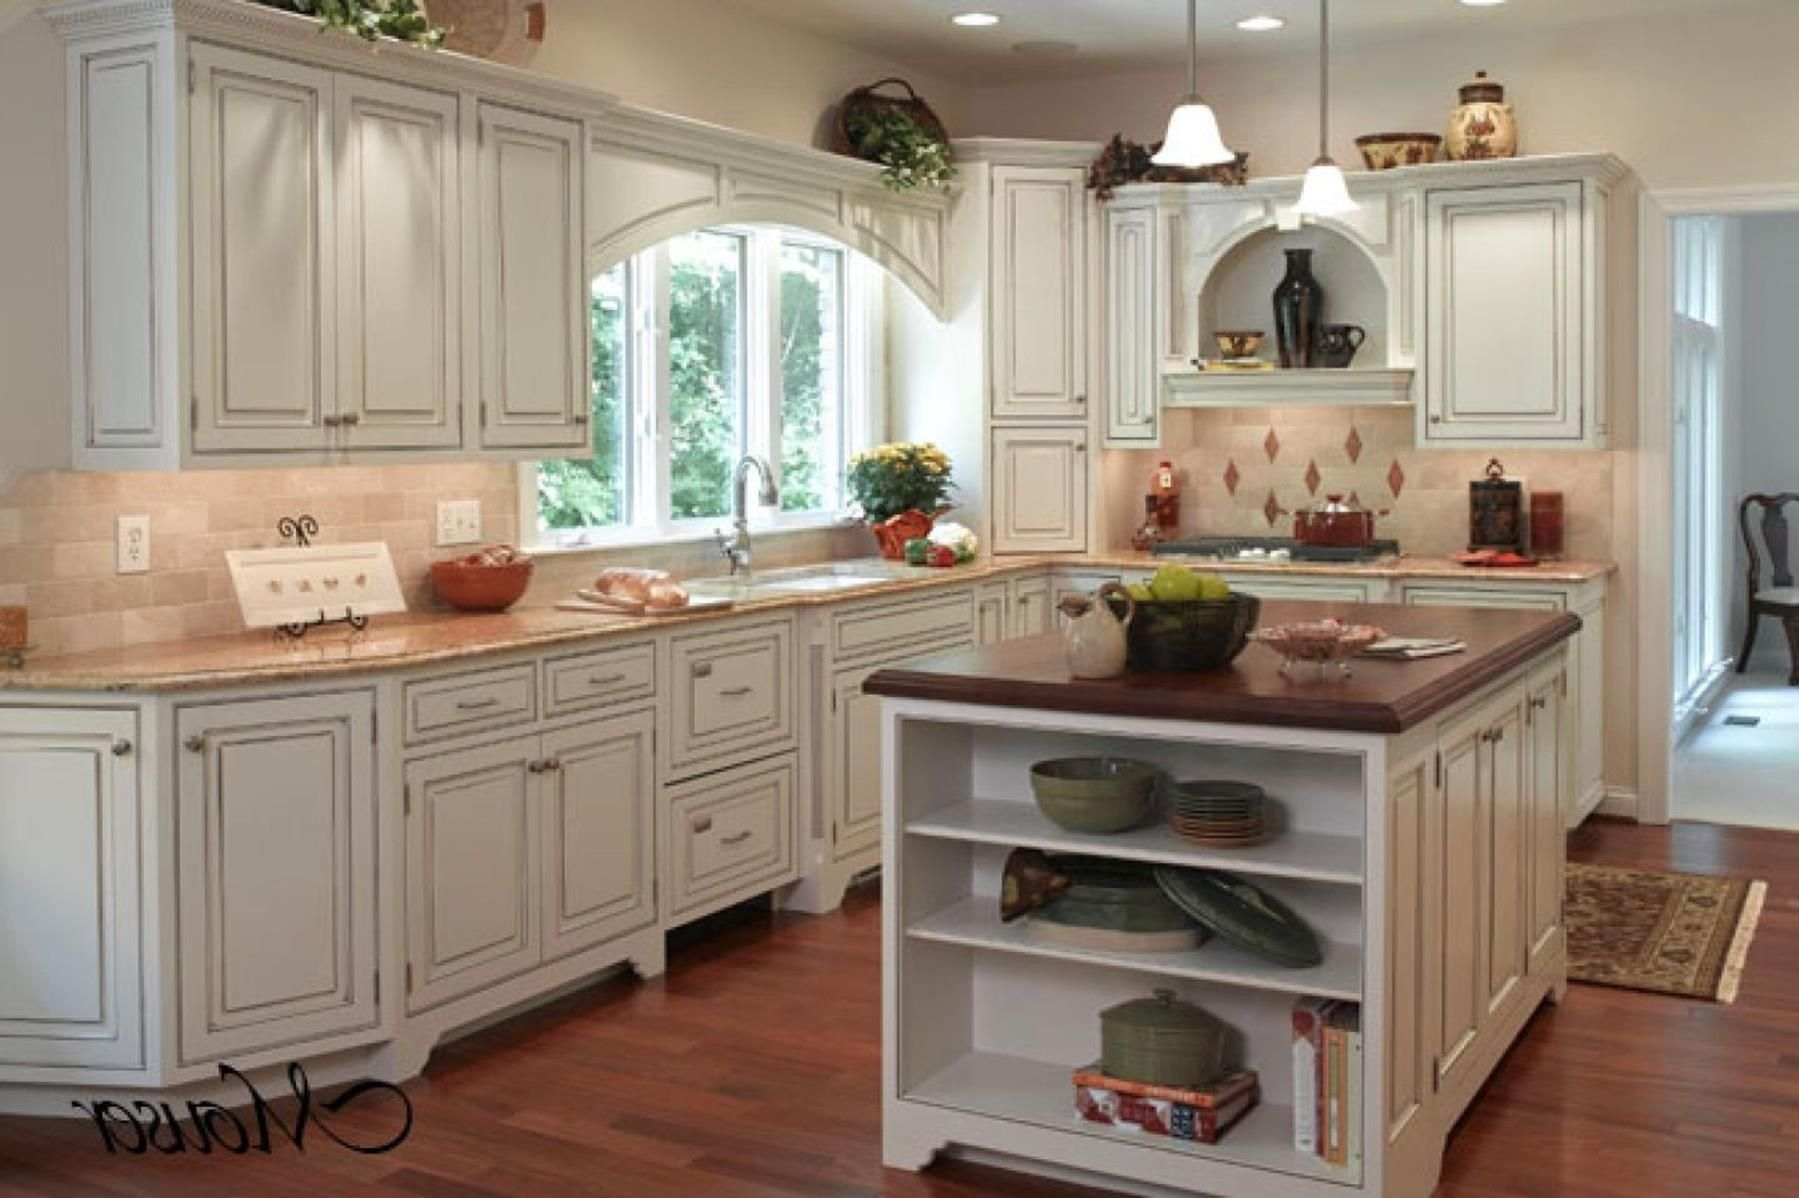 Rustic French Country Cottage Kitchen 17 | Country kitchen ...